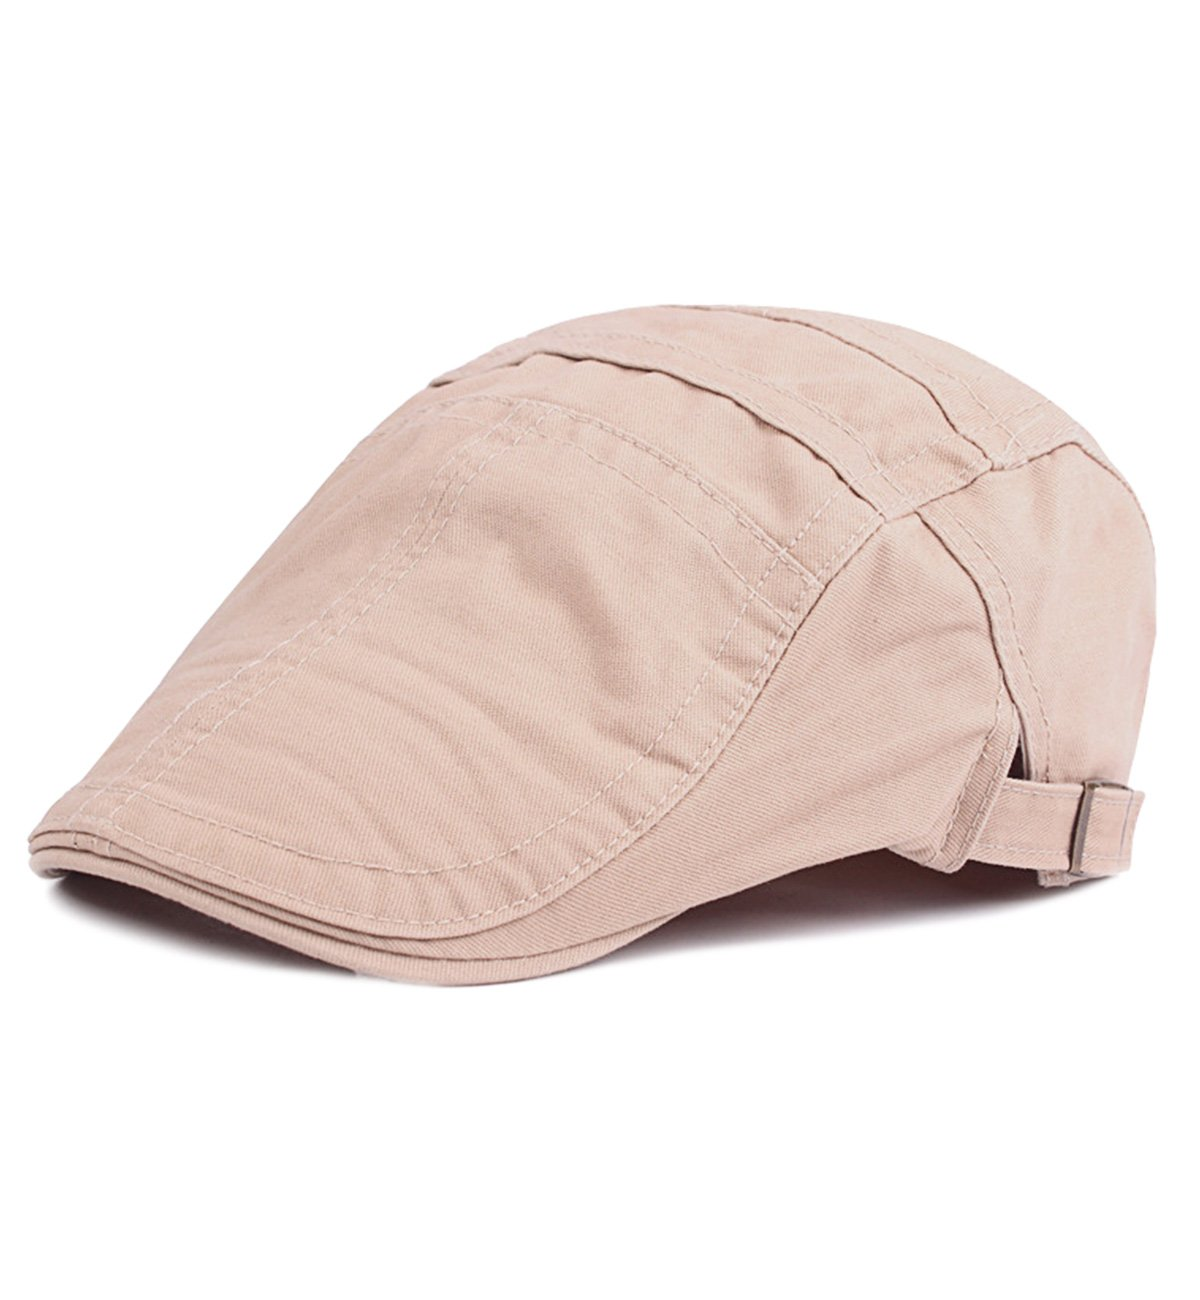 Funjoy-Mens-newsboy-Cabbie-Driving-Hat-Retro-Peaked-Hat-Caps-For-Spring-Summer